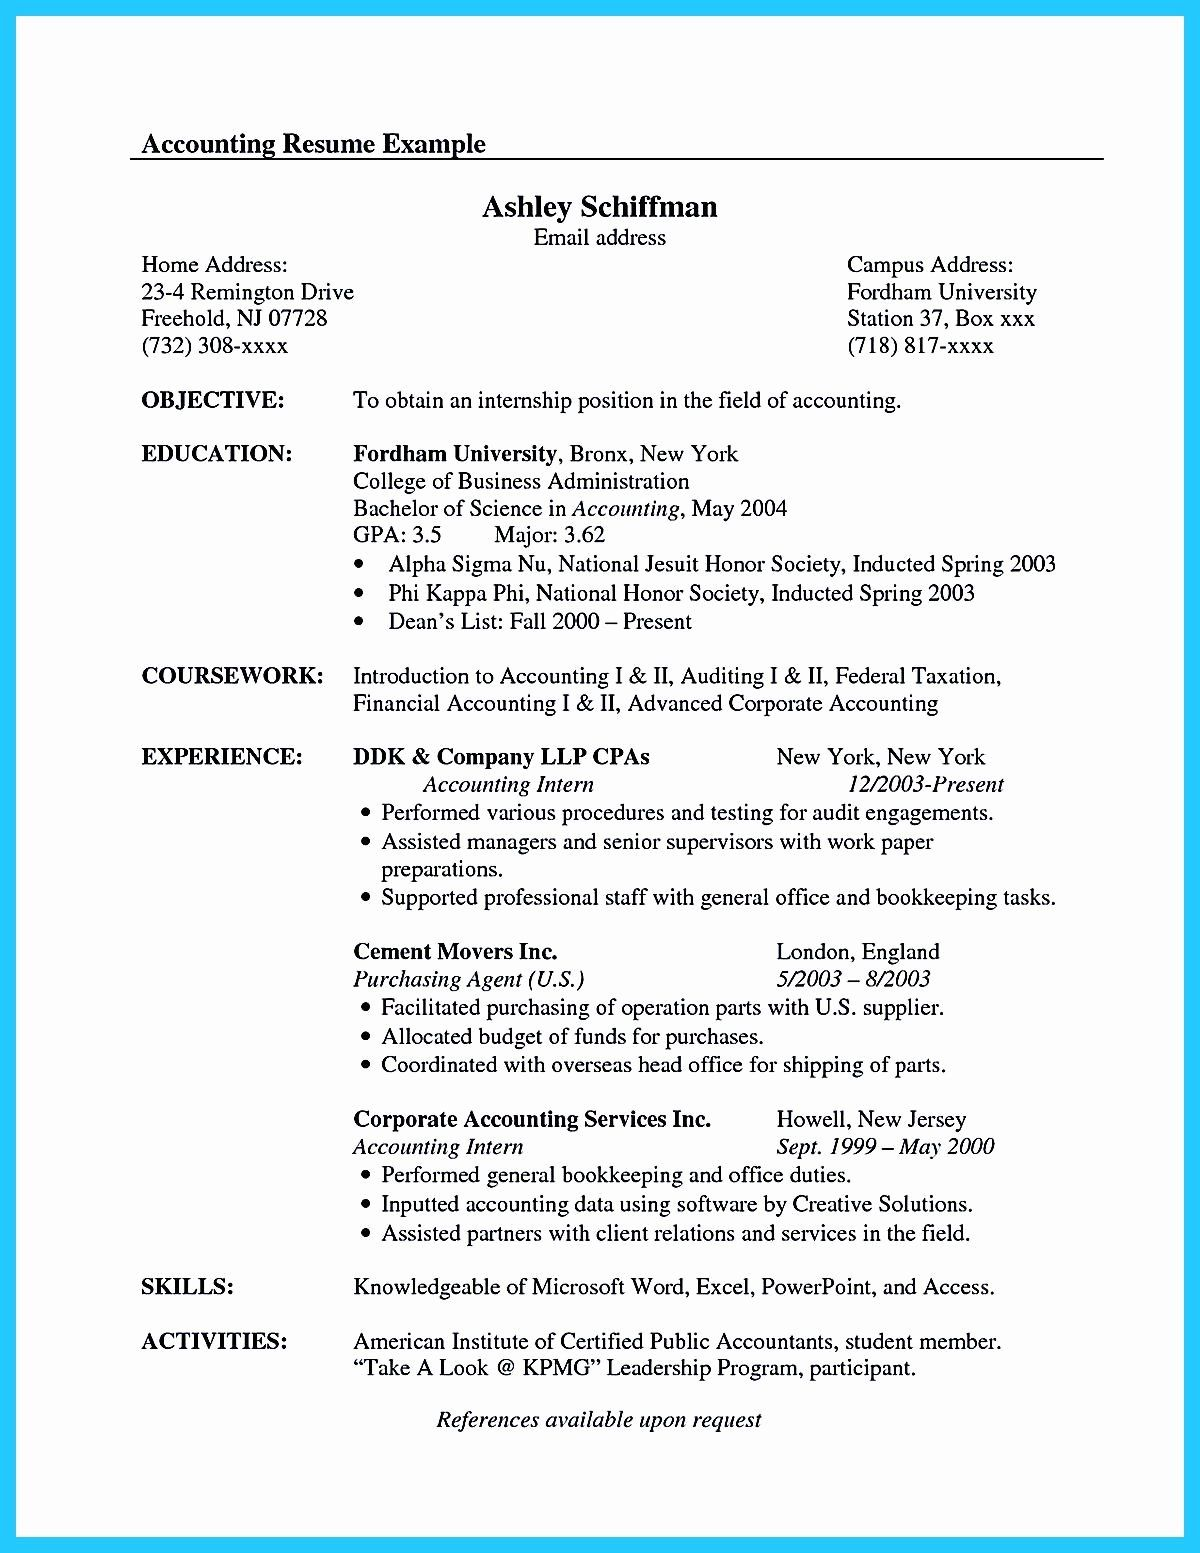 Accounting Graduate Resume No Experience Printable Resume Template Resume Examples Internship Resume Accountant Resume